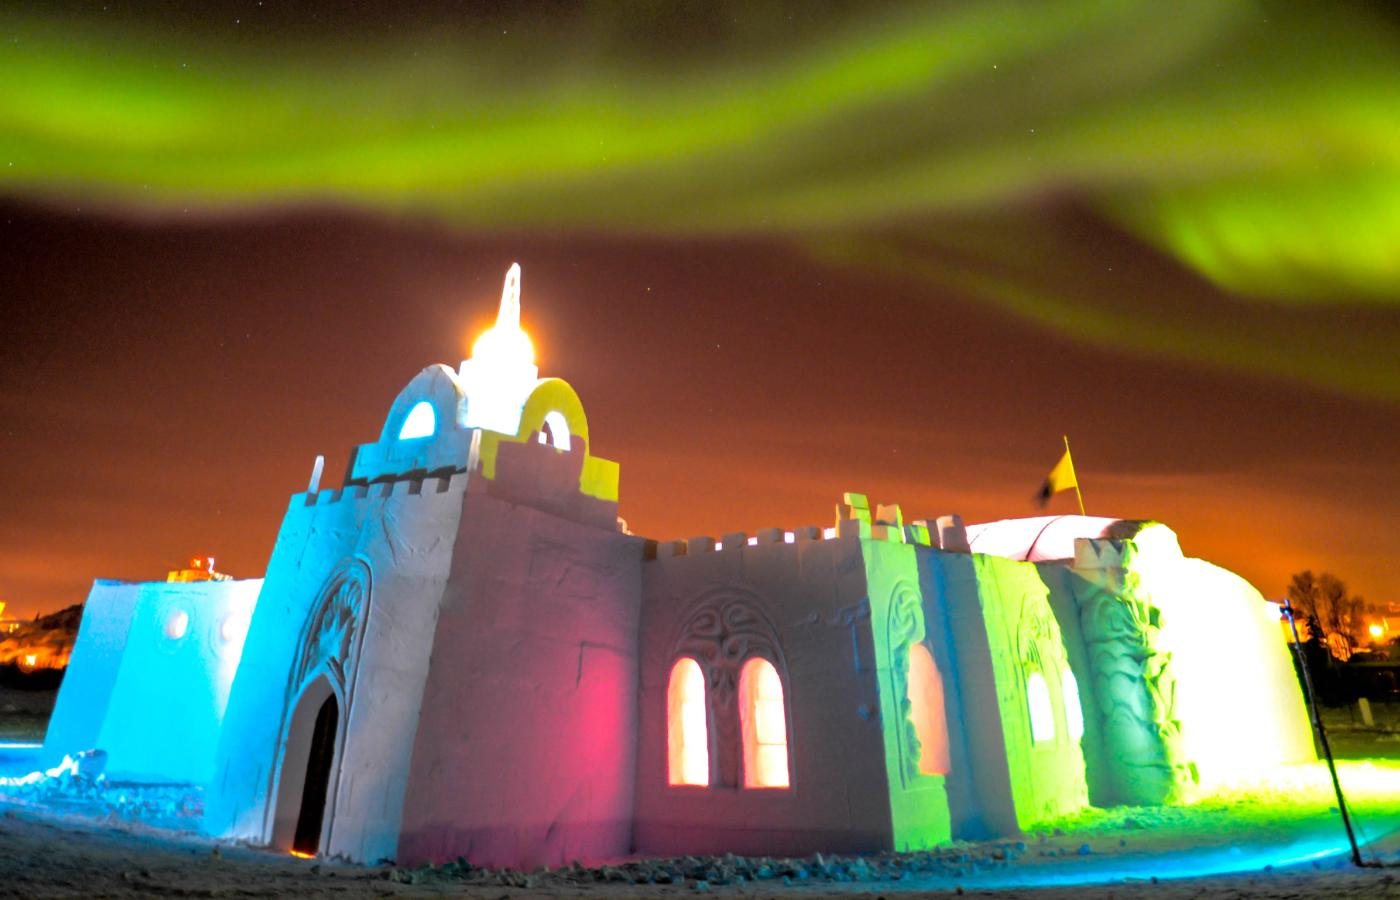 The SnowKing Castle shines in blue red and green colours under the shining Northern Lights in the month of March